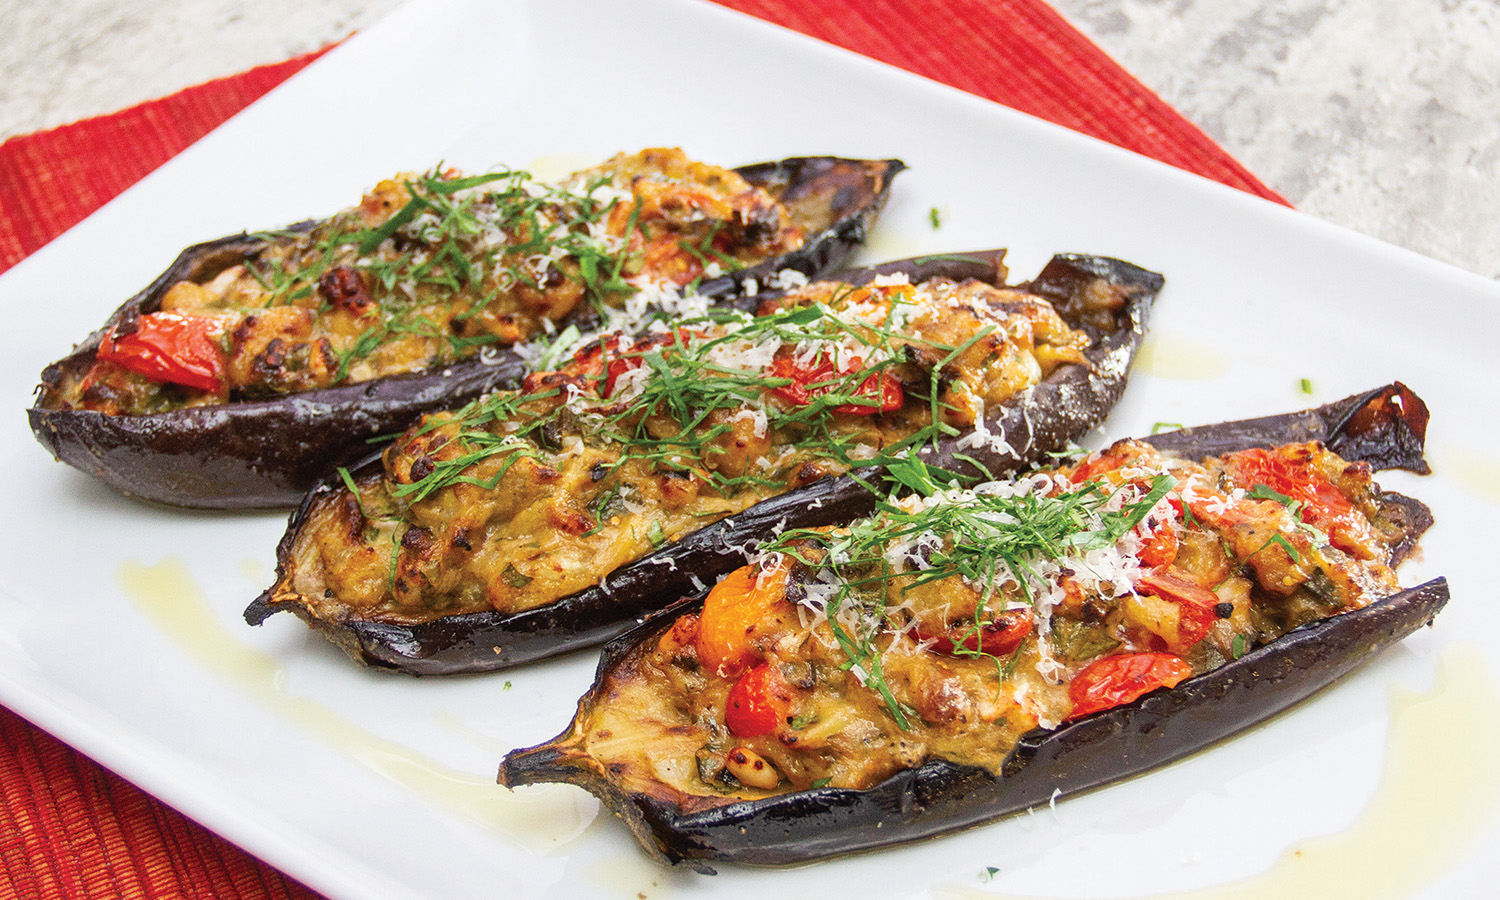 Chicken, Tomato and Herb-Stuffed Eggplant